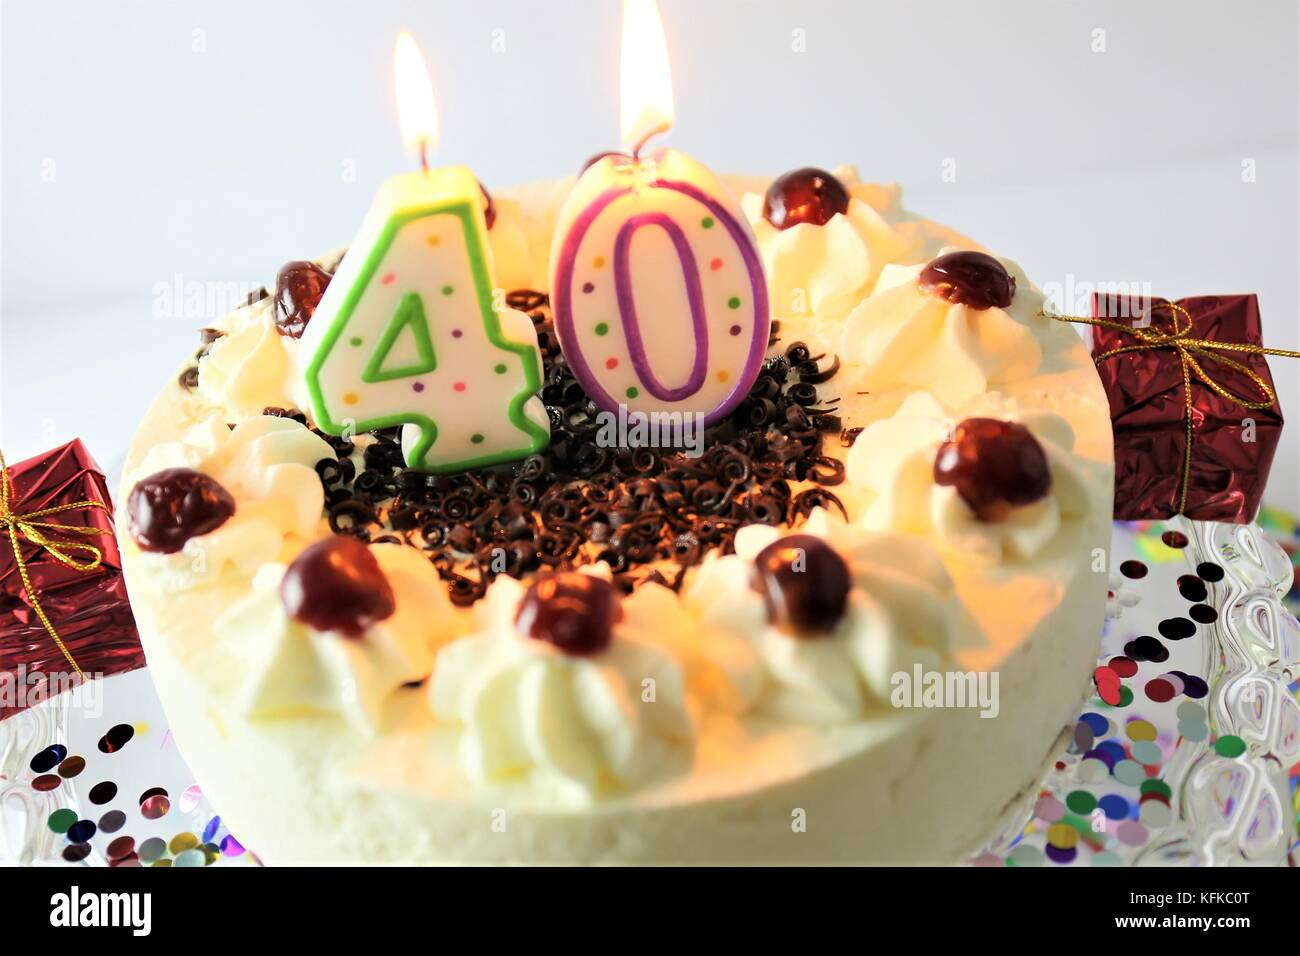 An Image Of A Birthday Cake With Candle 40 Stock Photo 164539672